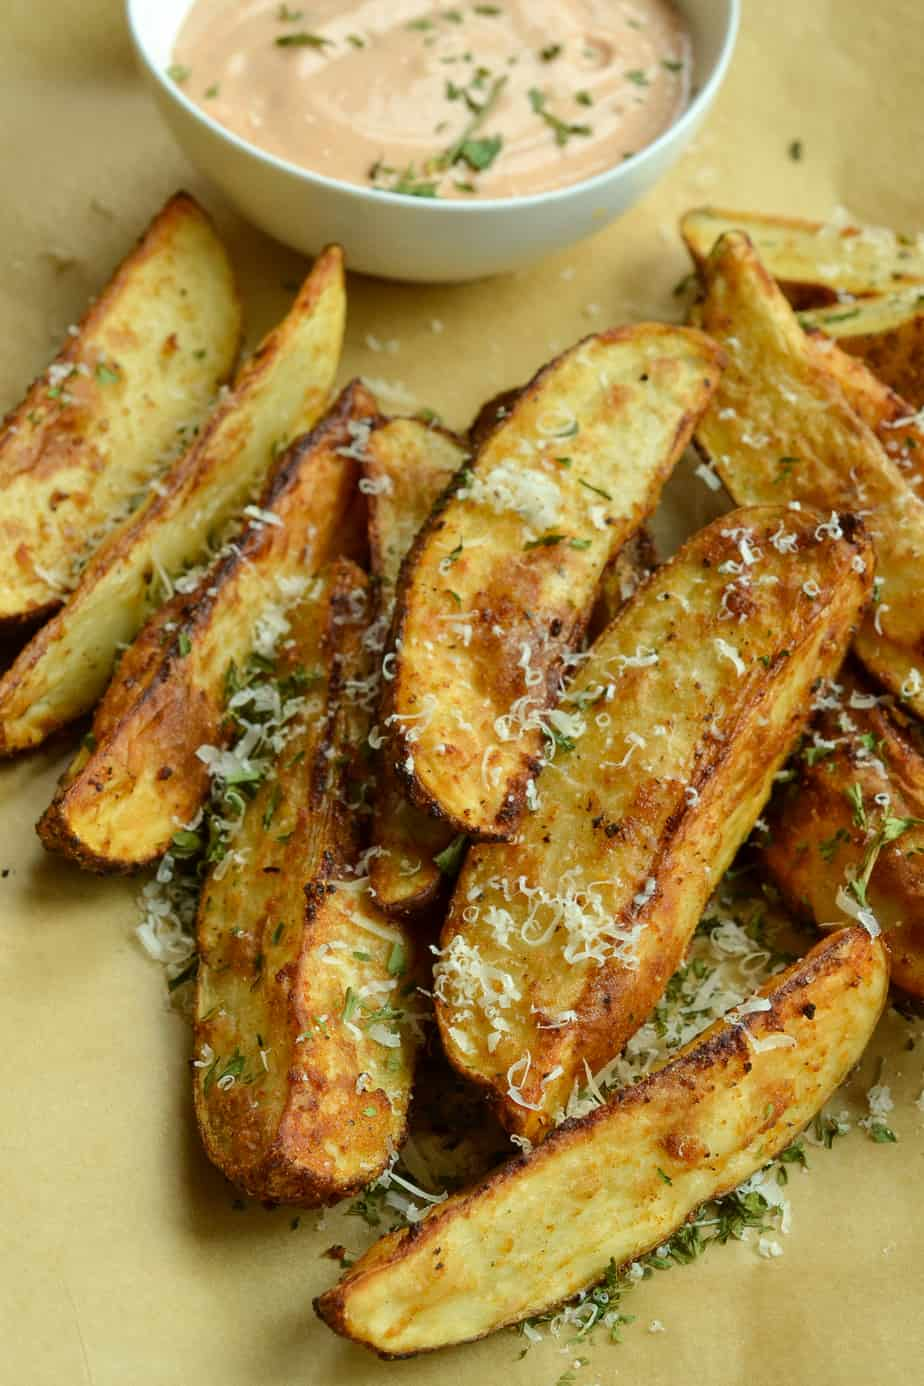 Crispy potato wedges with a spicy mayonnaise based sauce